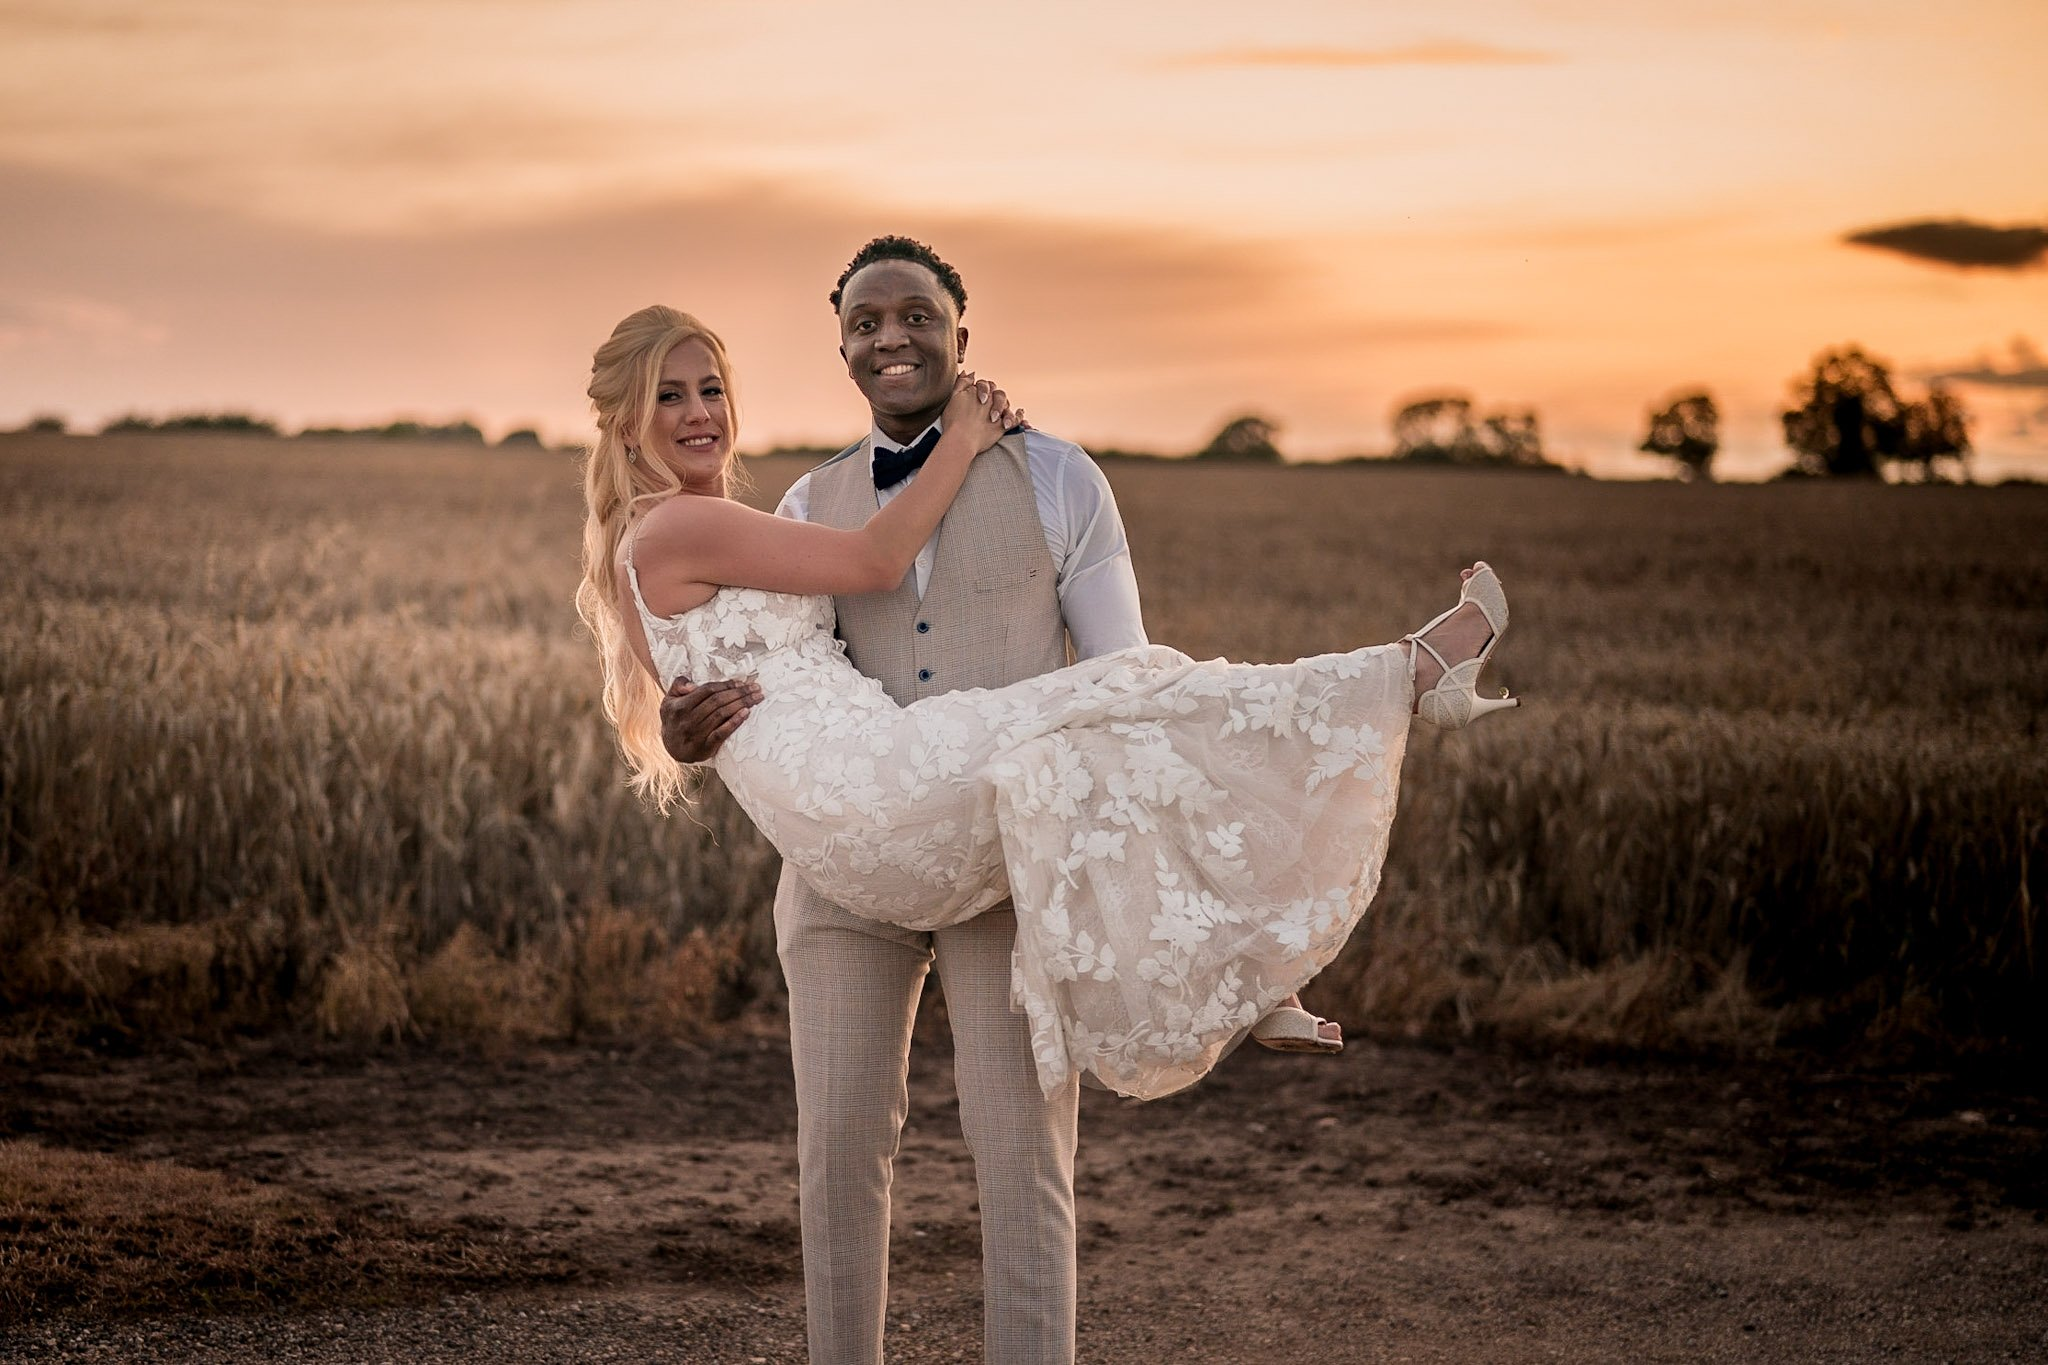 Your Favourite Frame YFFUK Mwasuku Norton Fields Atherstone sunset in front of the wheat fields golden skies groom holding his bride in his arms both smiling joy evident across their faces